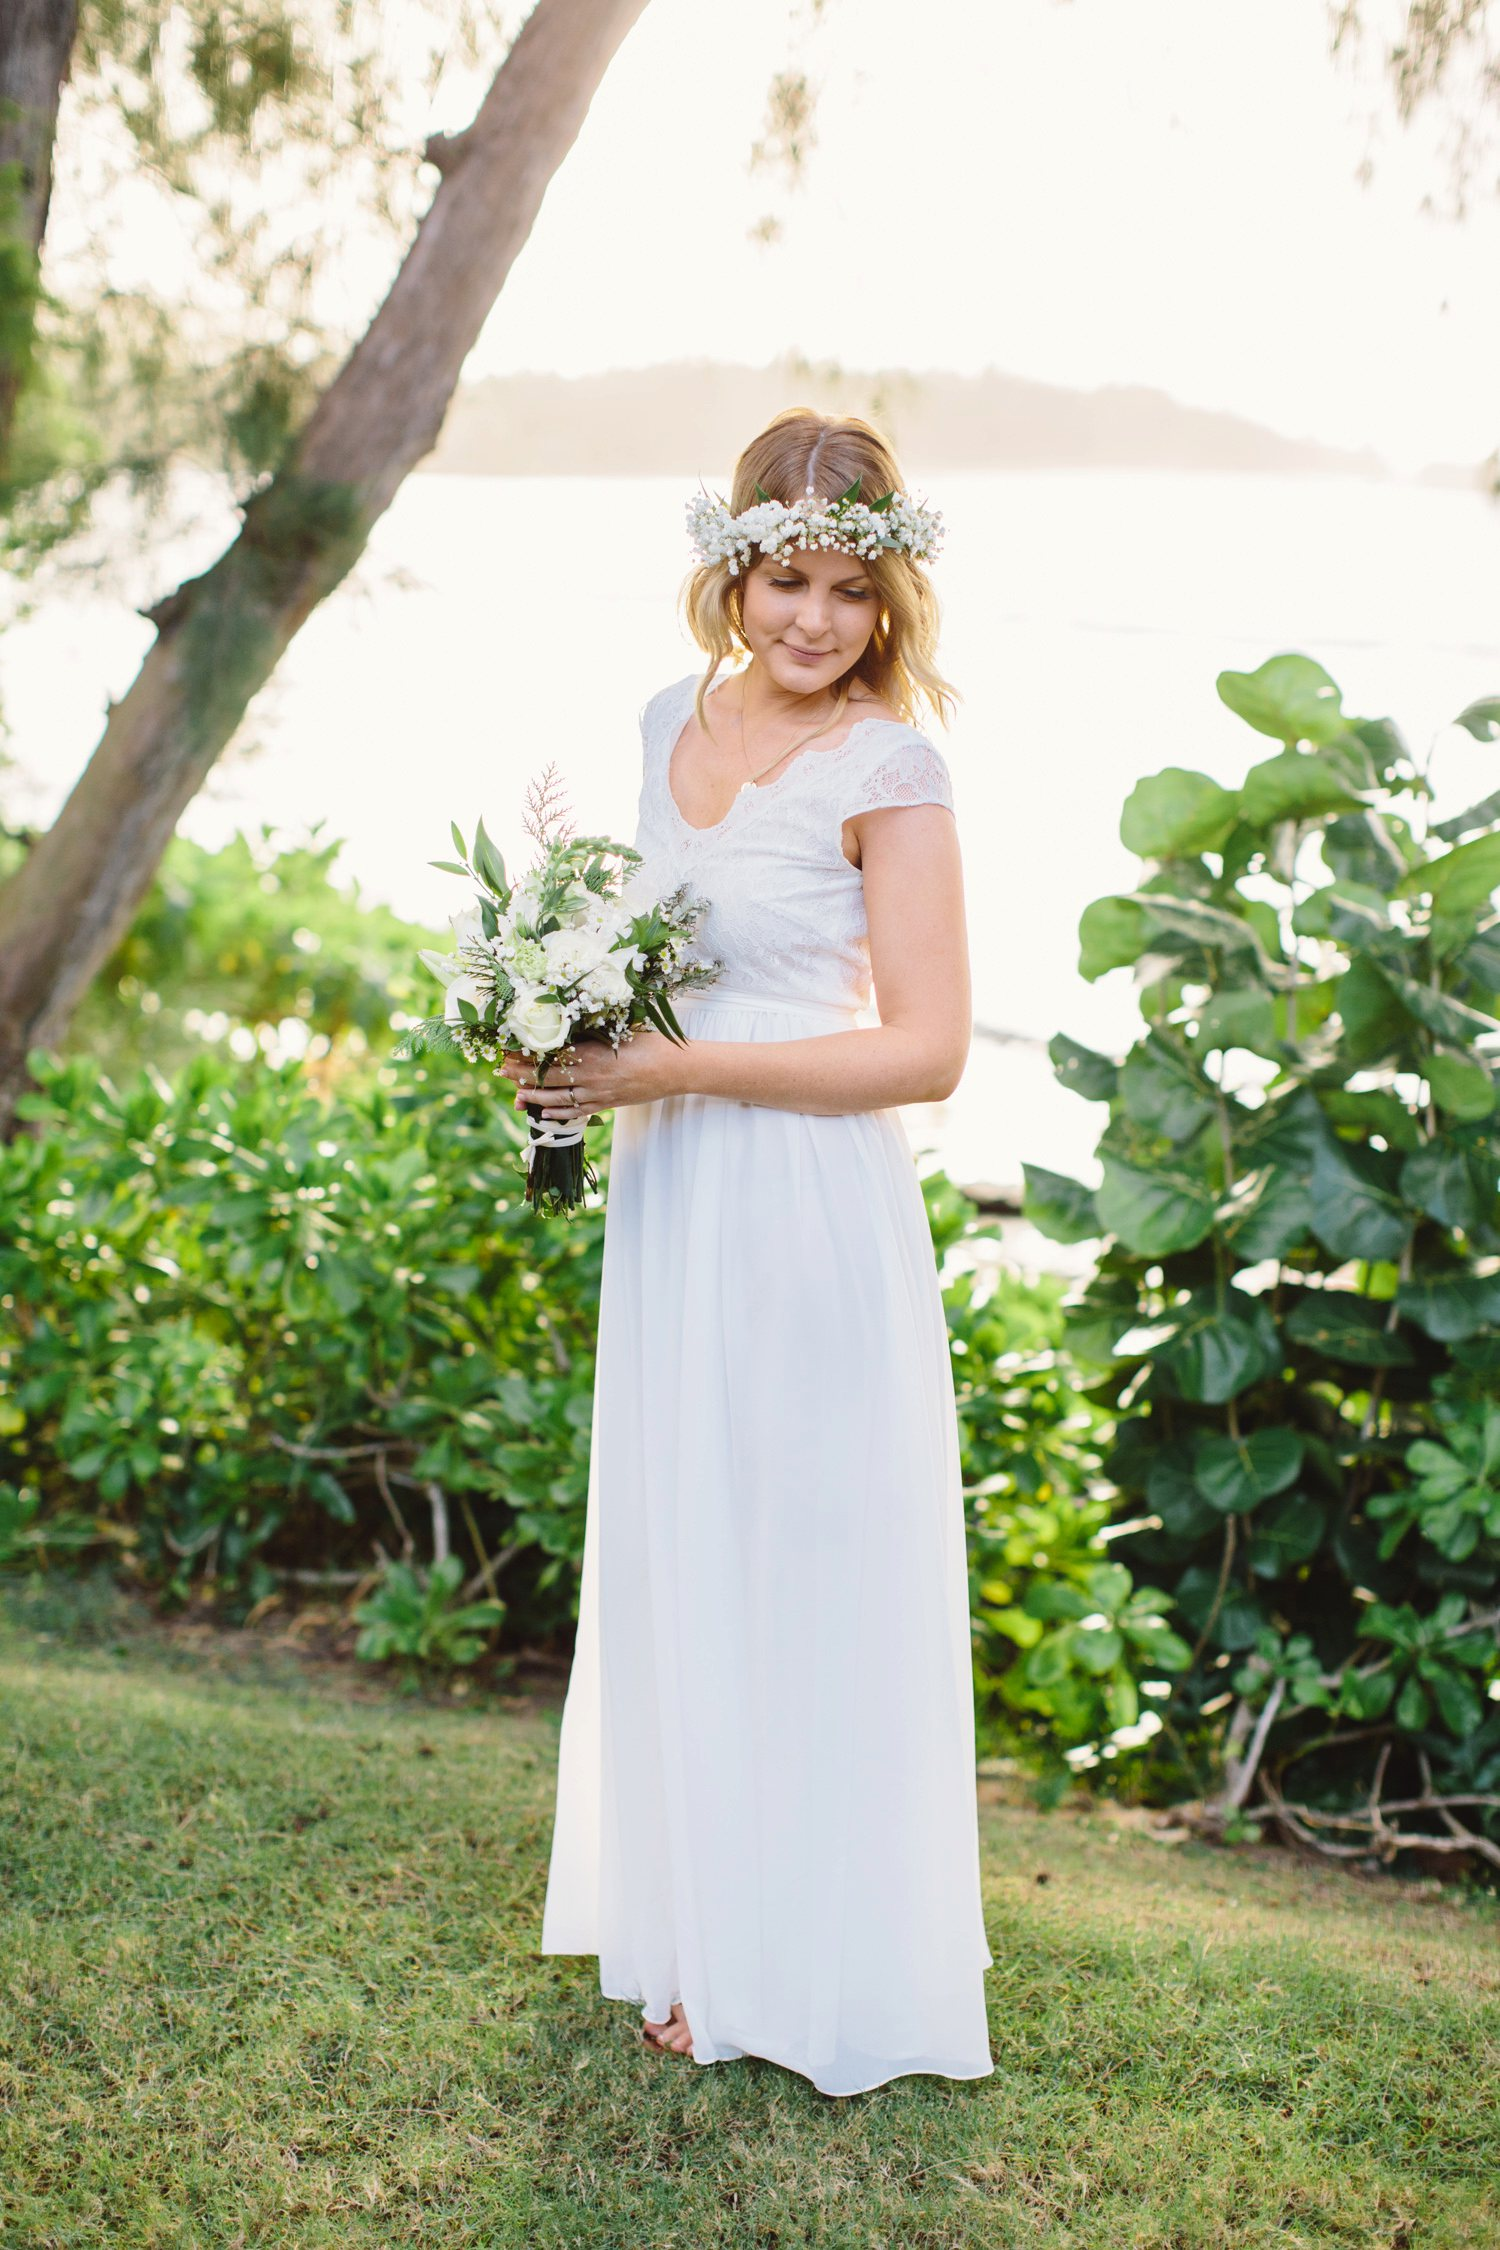 annika-pele-hawaii-elopement-011.jpg